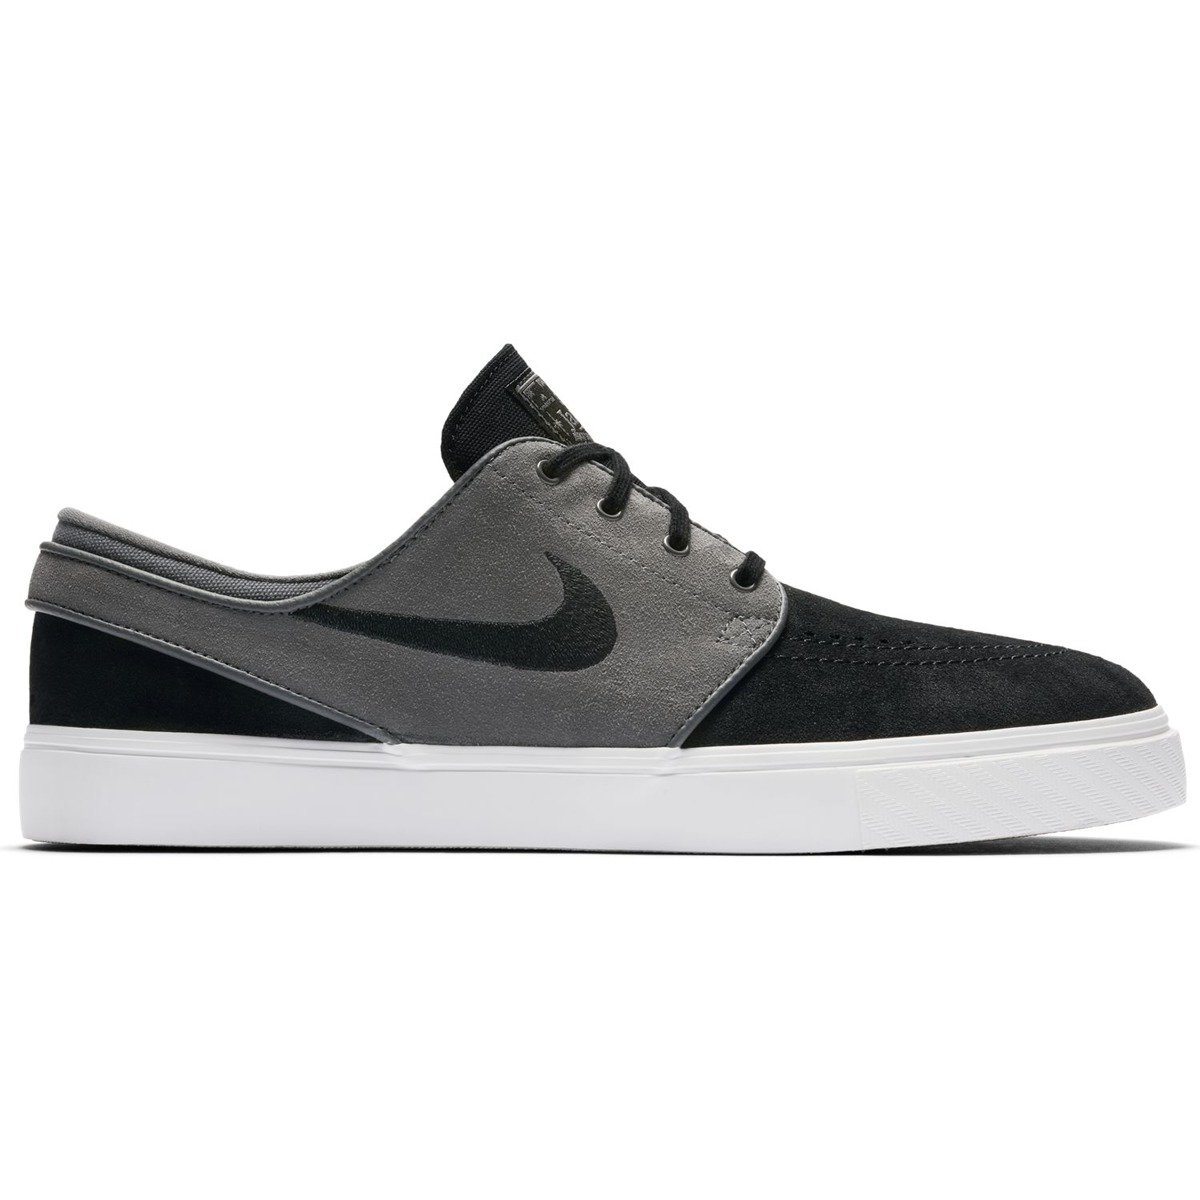 a987c0a7903e shoes nike zoom stefan janoski dark grey black-summit white Click to zoom  ...